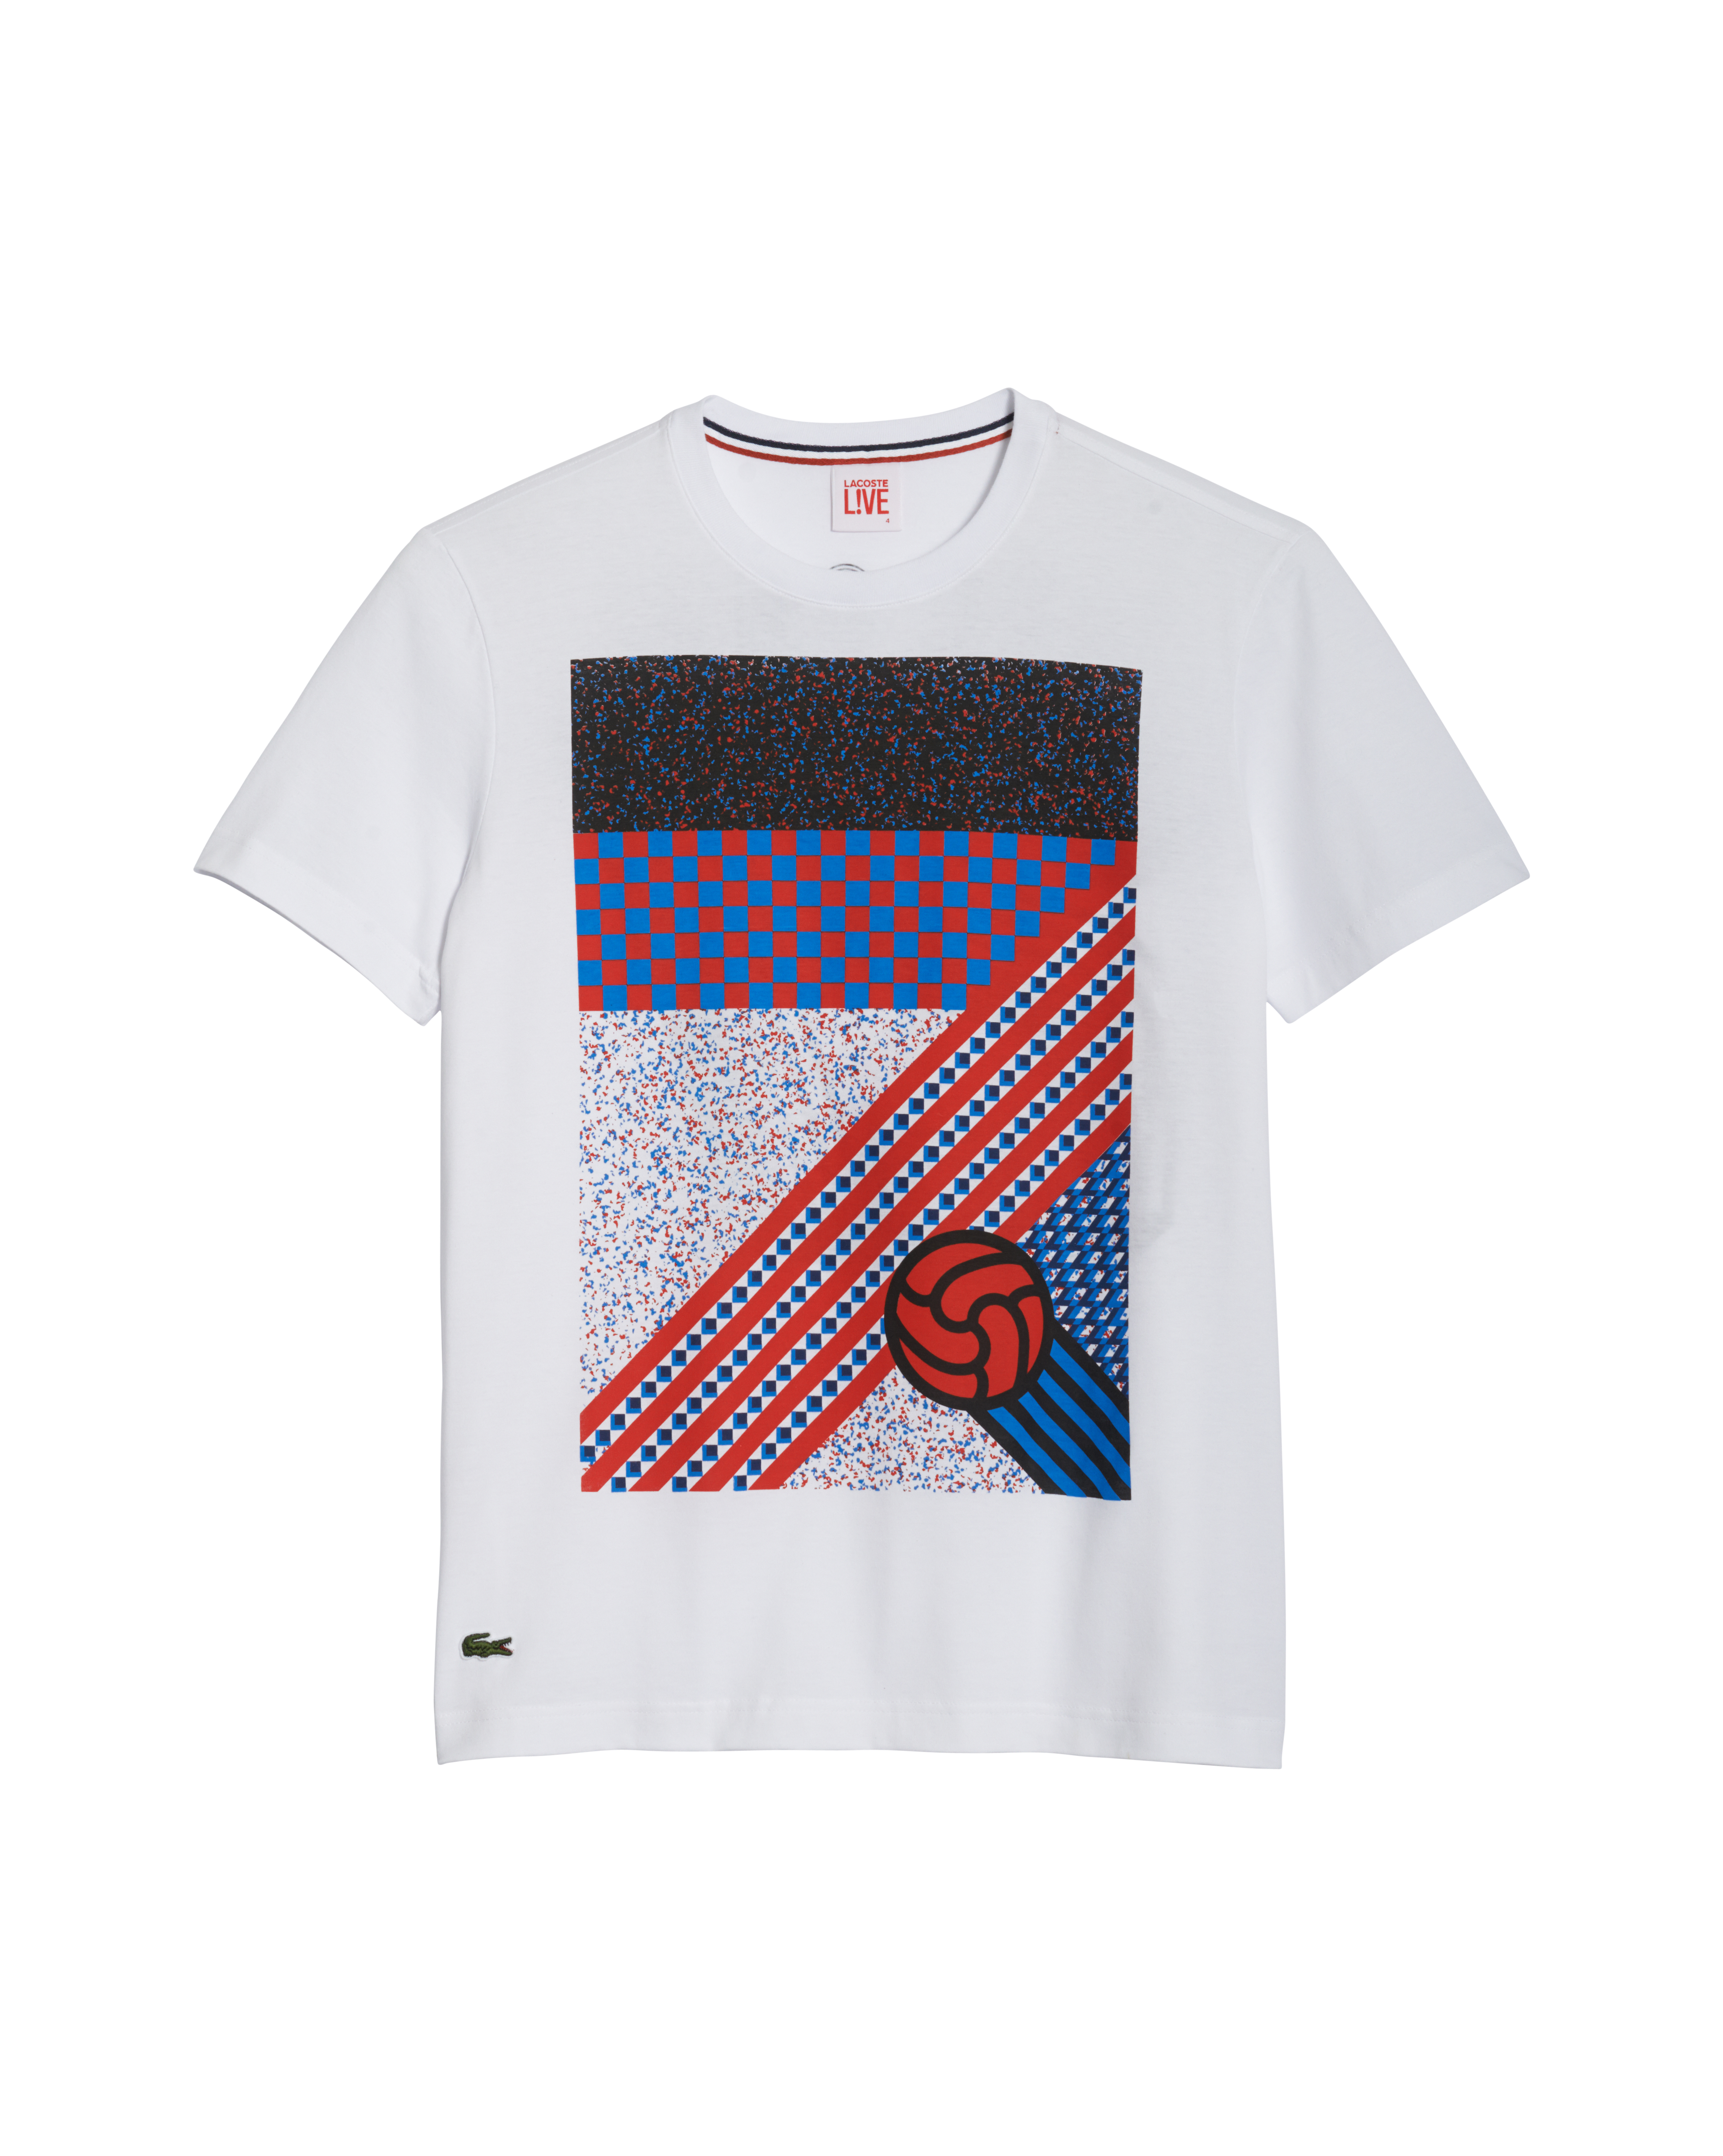 06_SS14_LACOSTE_LIVE_BY_SANGHON_KIM_-_Mens_T-_Shirt_TH3804-OP